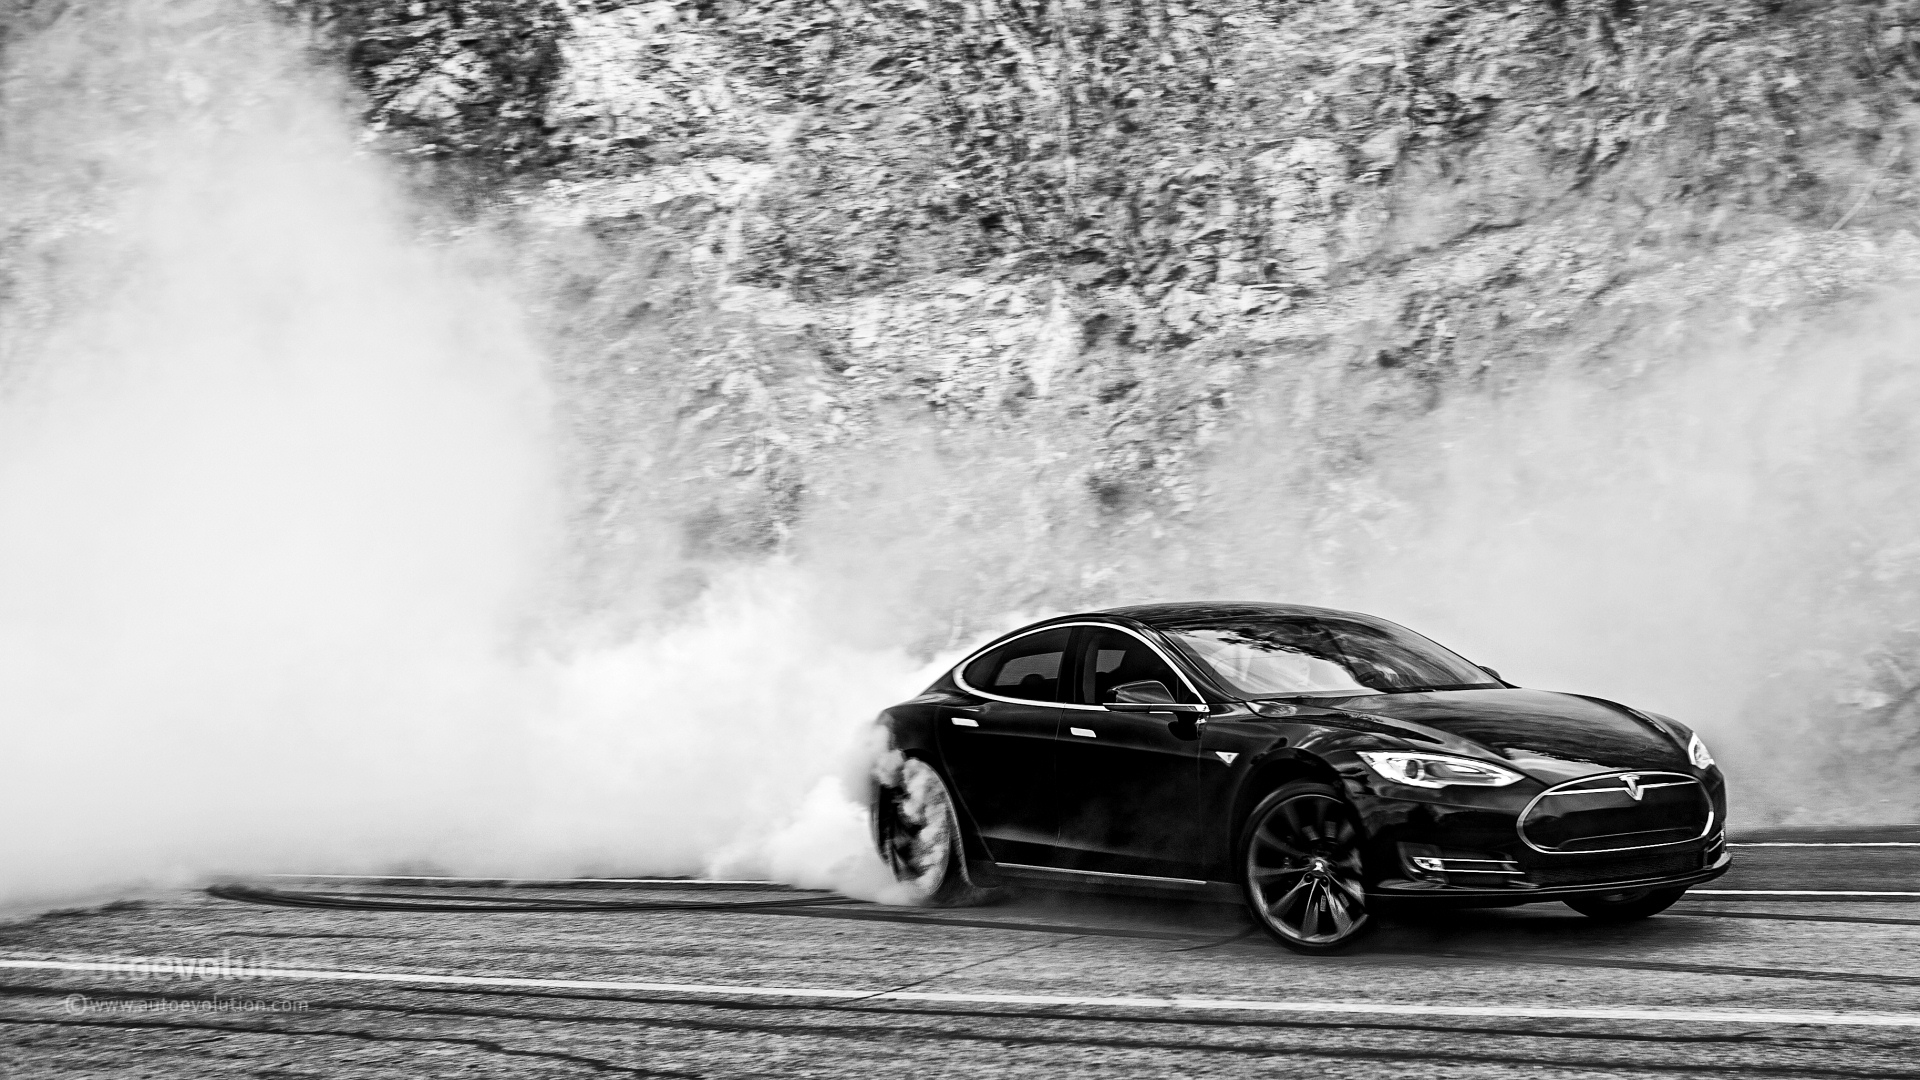 Model Y Hd: Tesla Model S Doing Monster Burnouts: HD Wallpapers